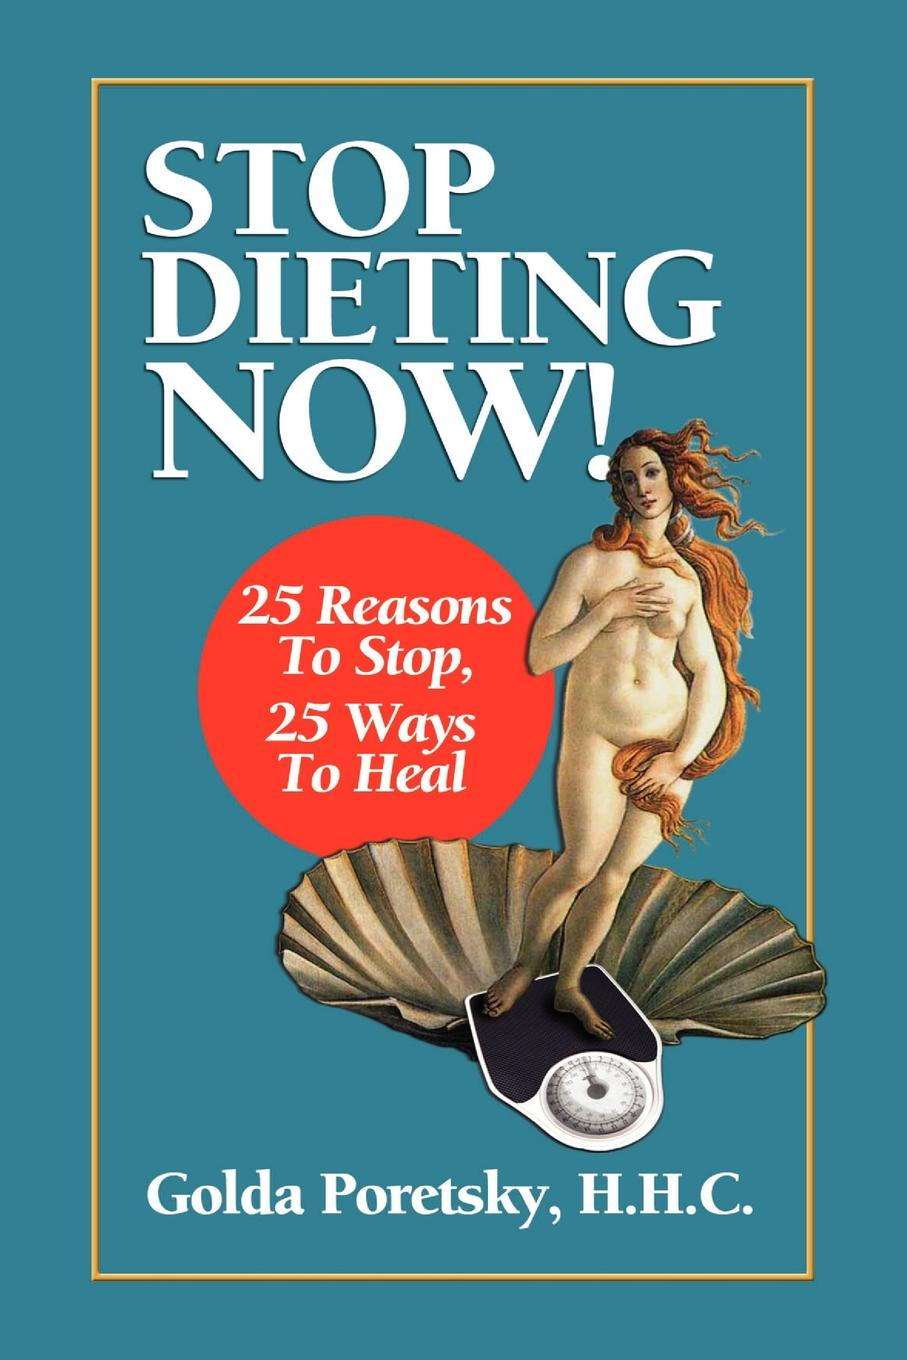 Golda Poretsky H.H.C. Stop Dieting Now. 25 Reasons To Stop, 25 Ways To Heal now is good